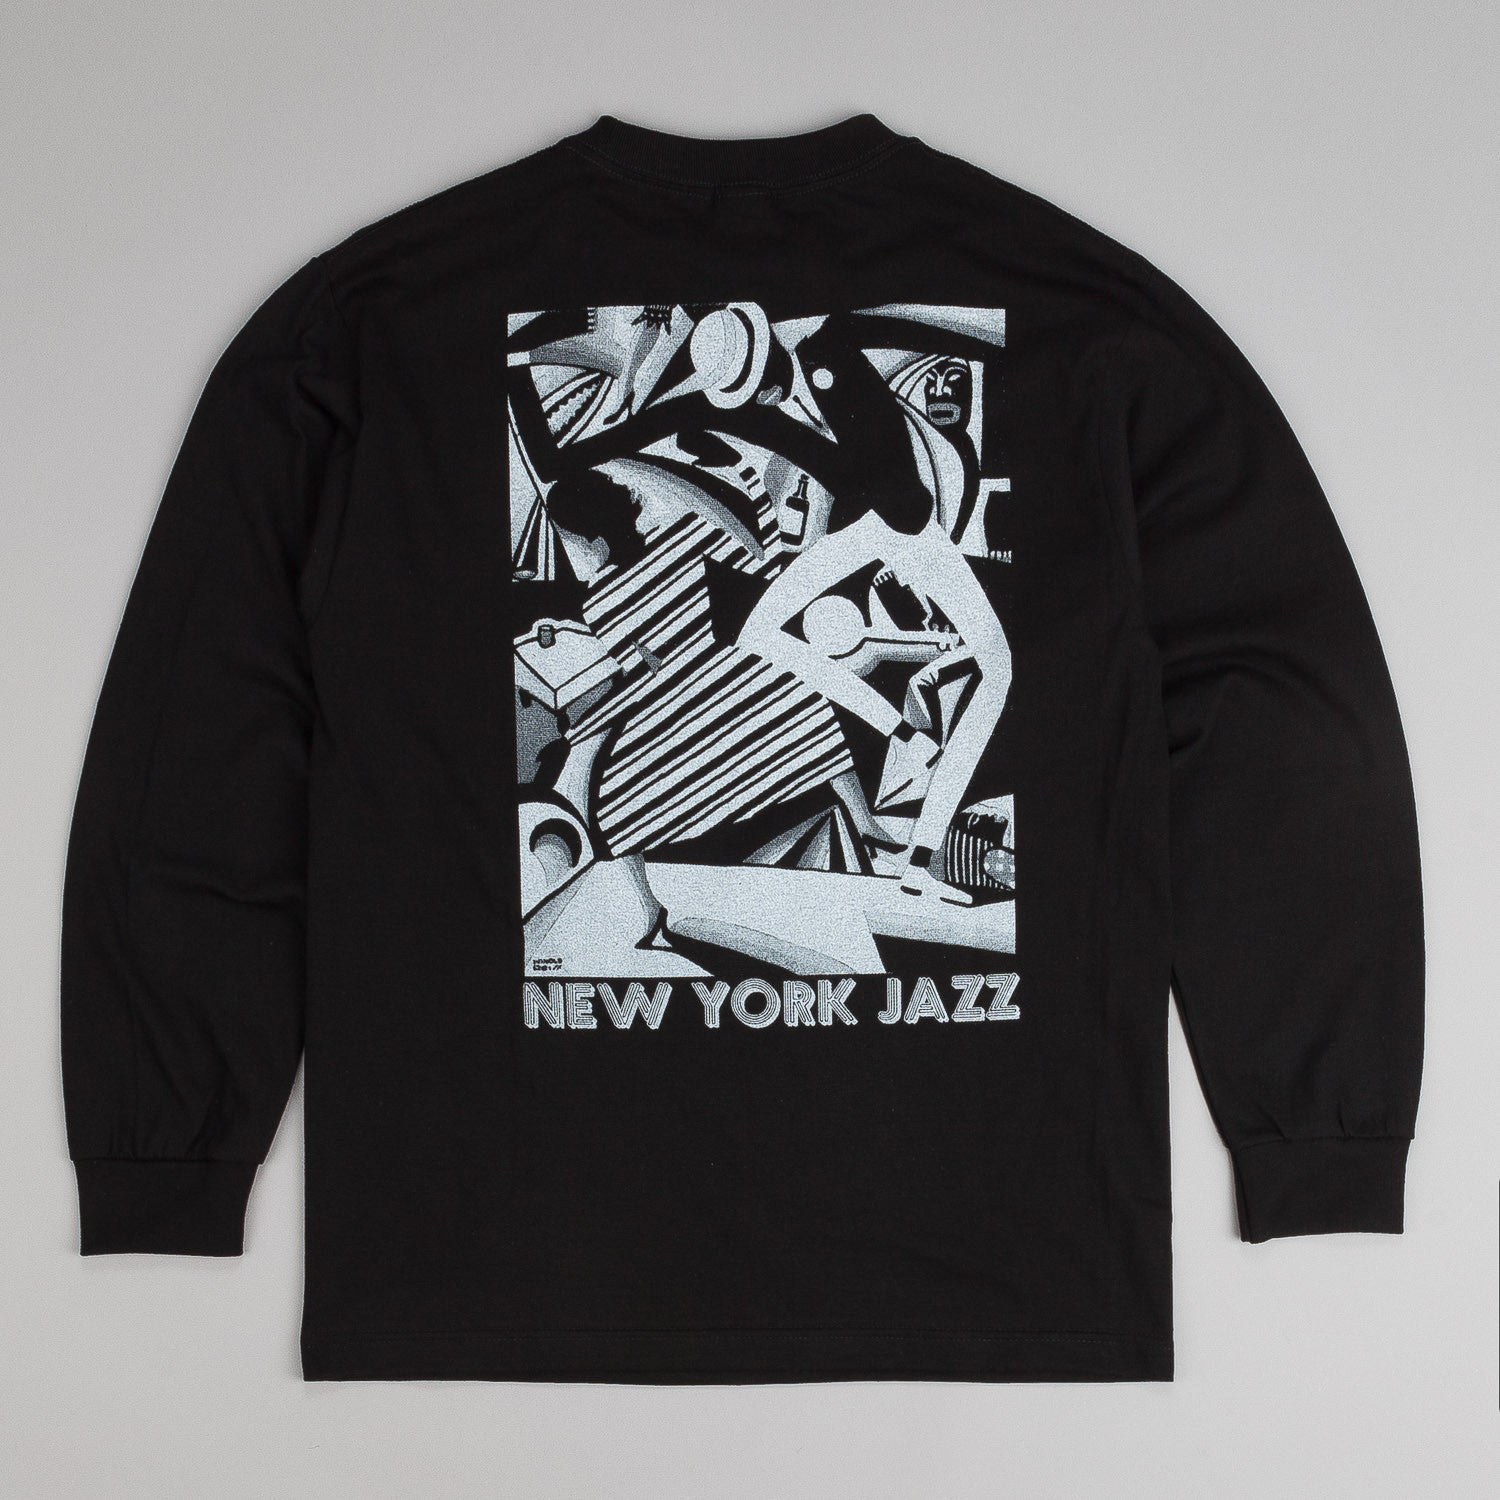 Lurk NYC Jazz L/S T-Shirt - Black